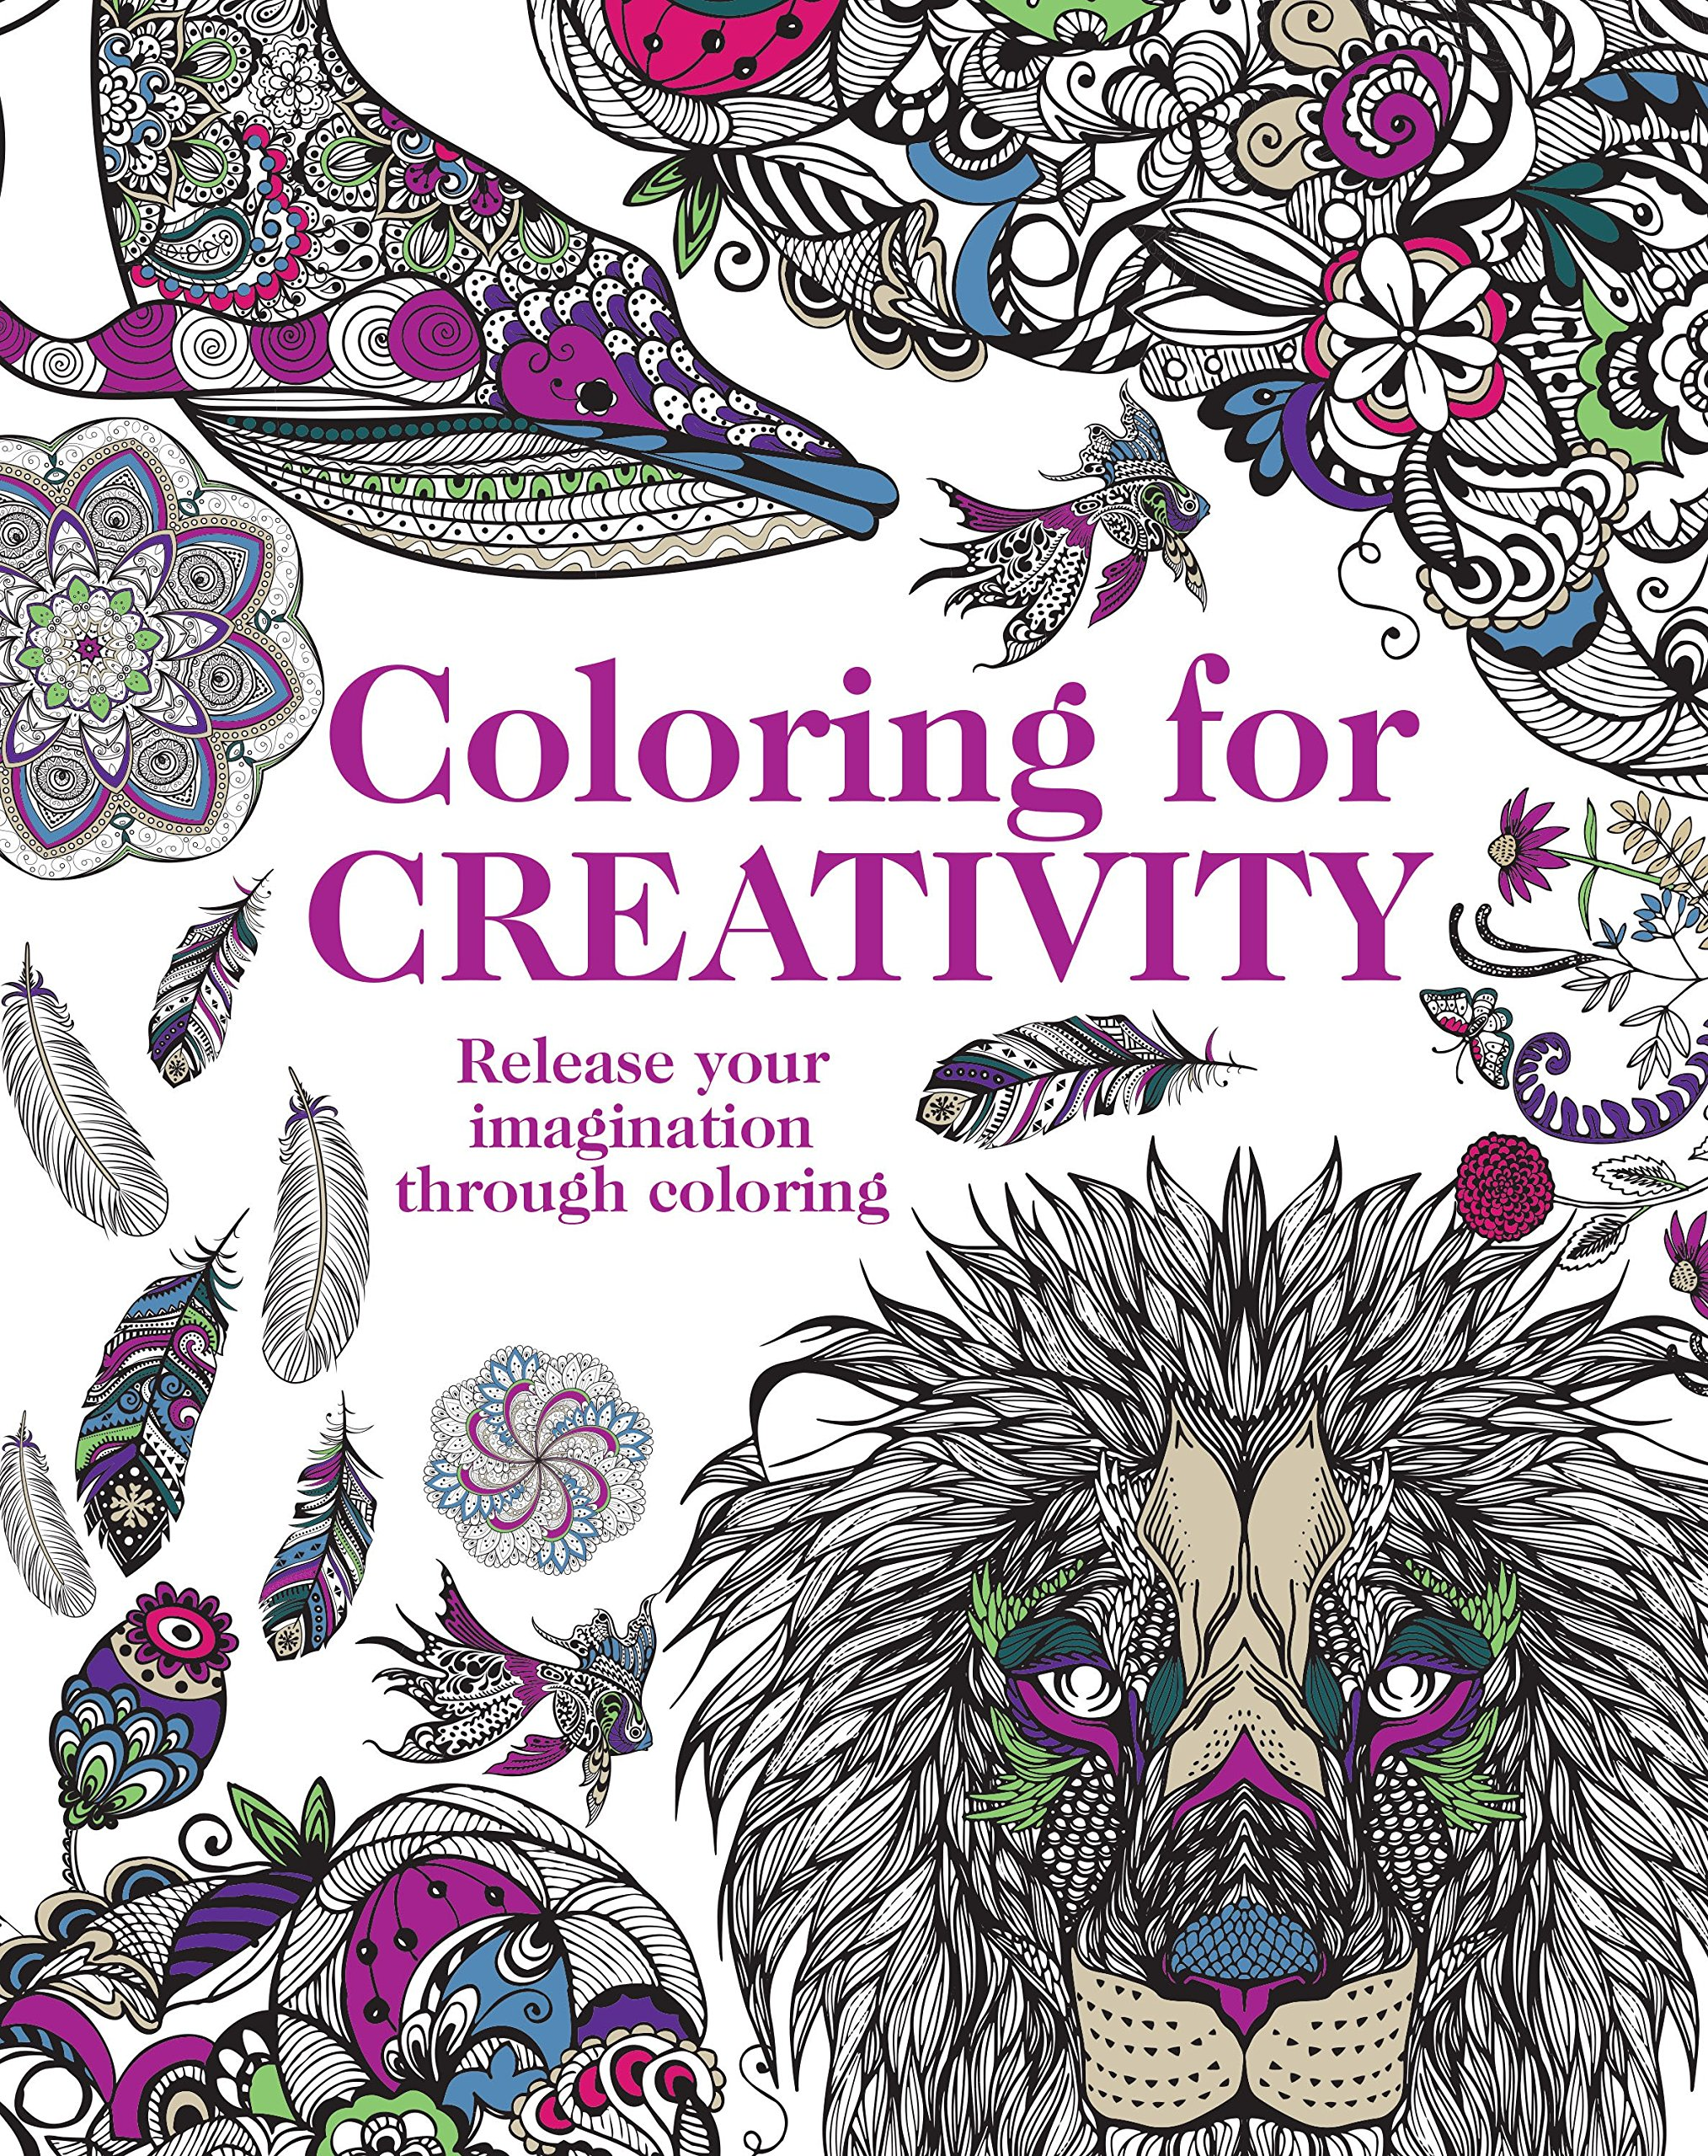 coloring-for-creativity-release-your-imagination-through-coloring